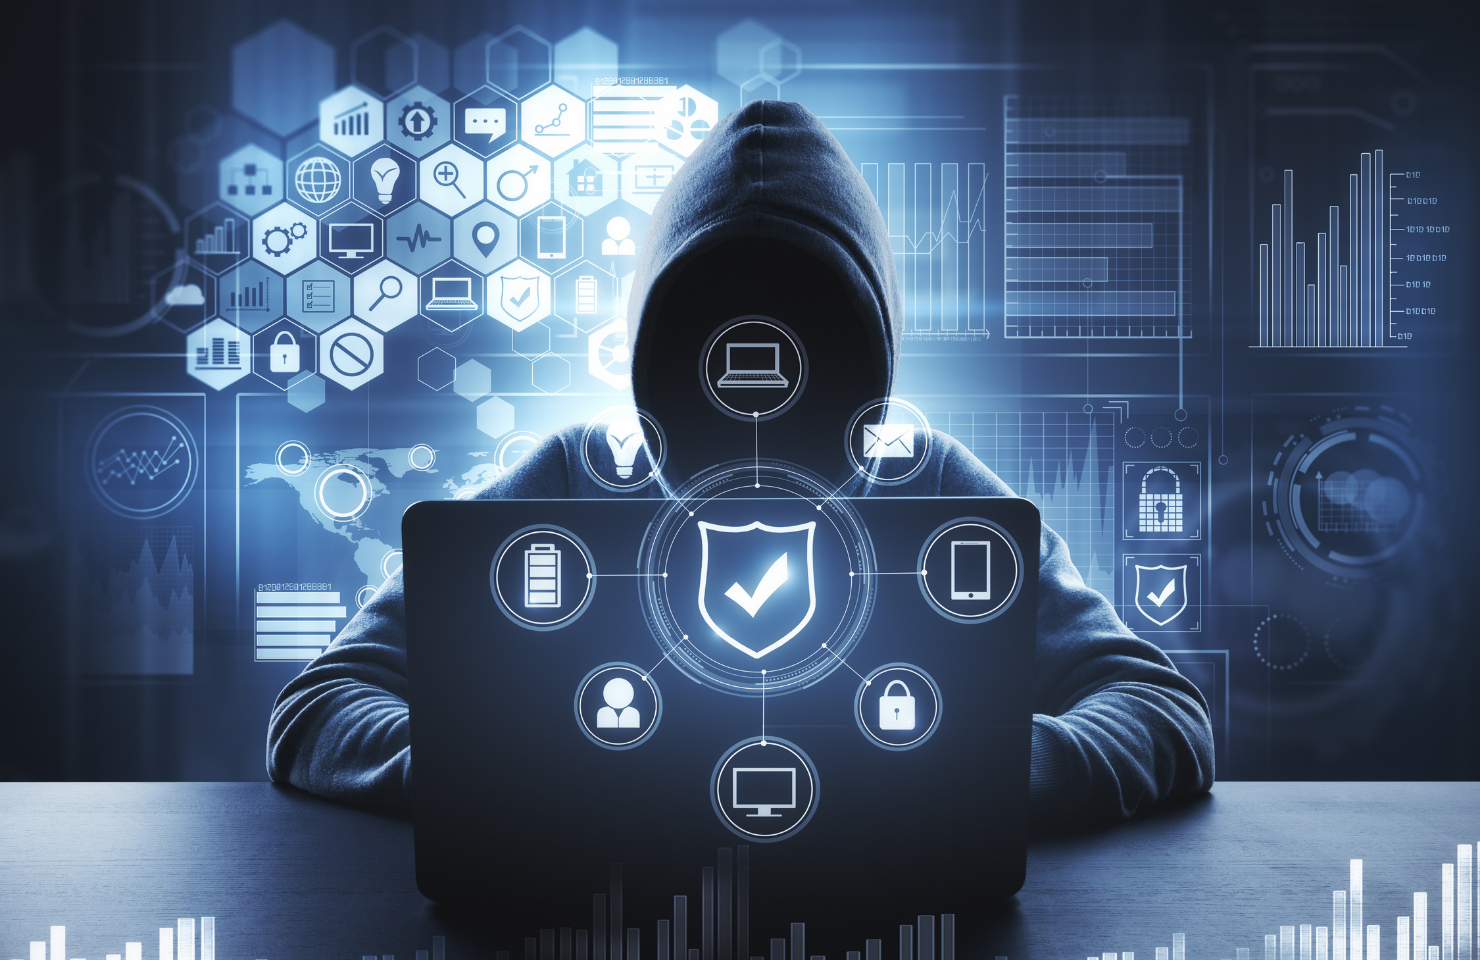 Can embedded devices be hacked?